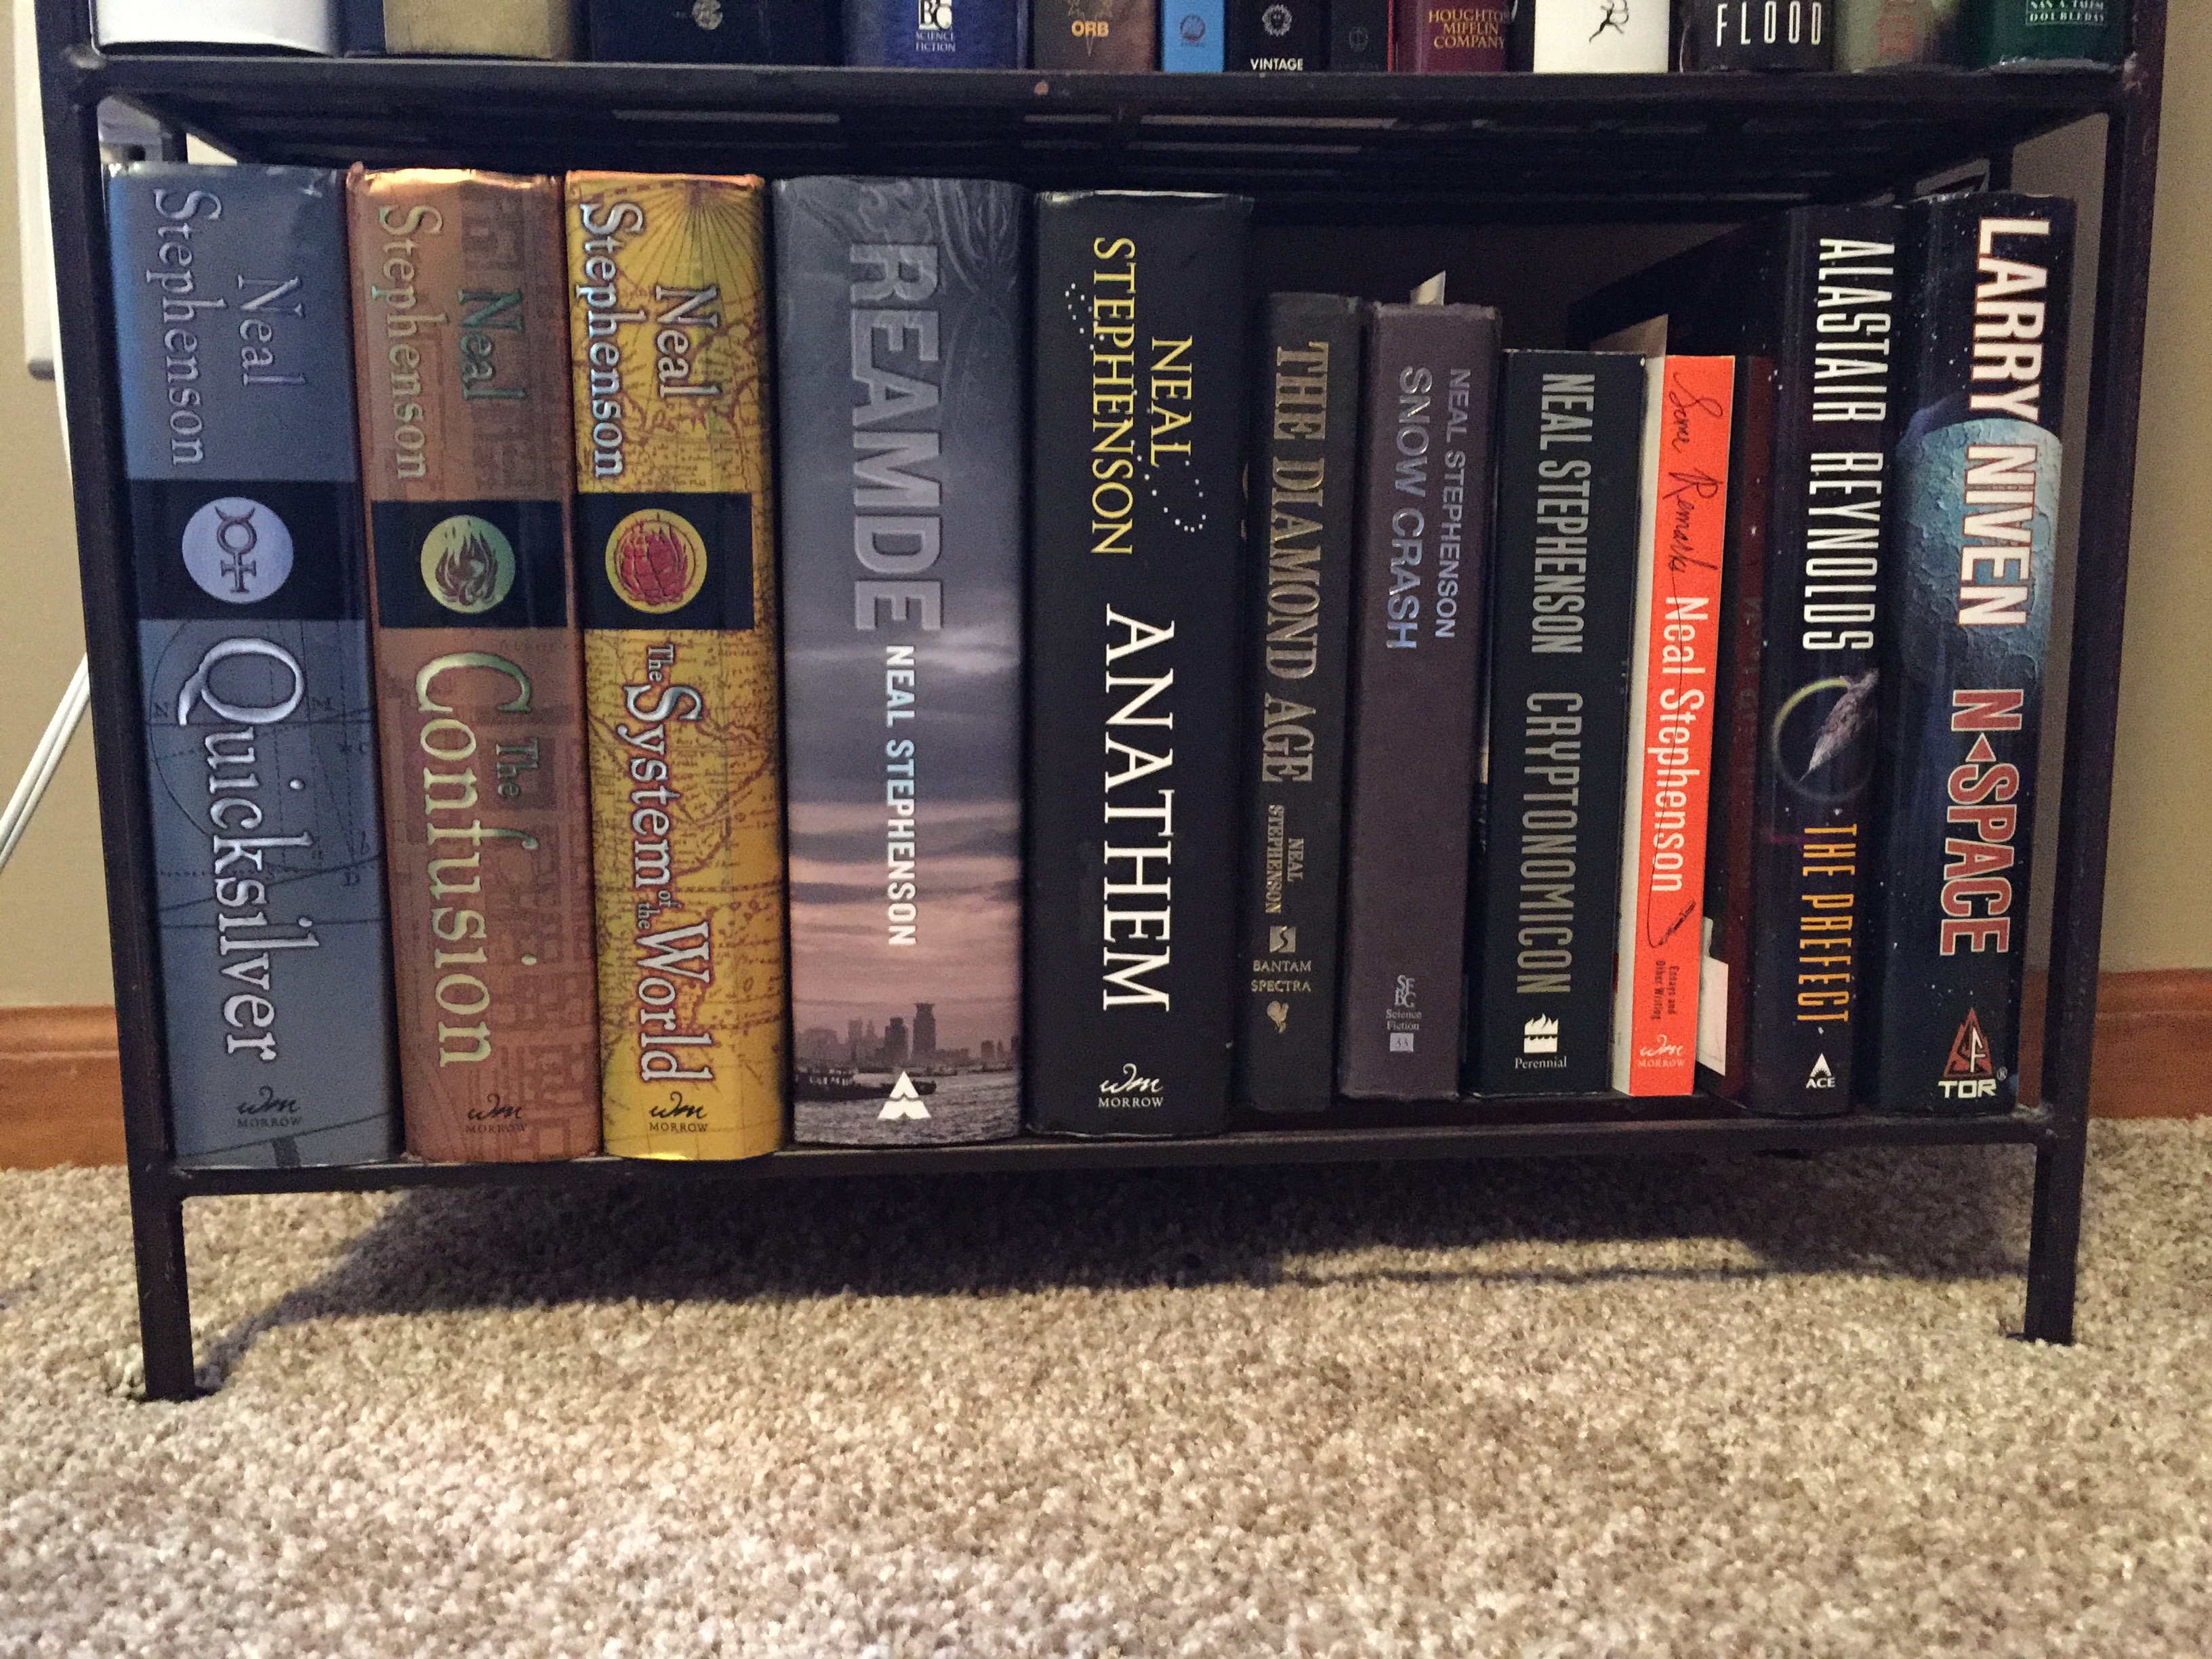 Some Neal Stephenson (i Own Much More Alastair Reynolds And Larry Niven,  But Those Are In Ebook Format, Soooo…